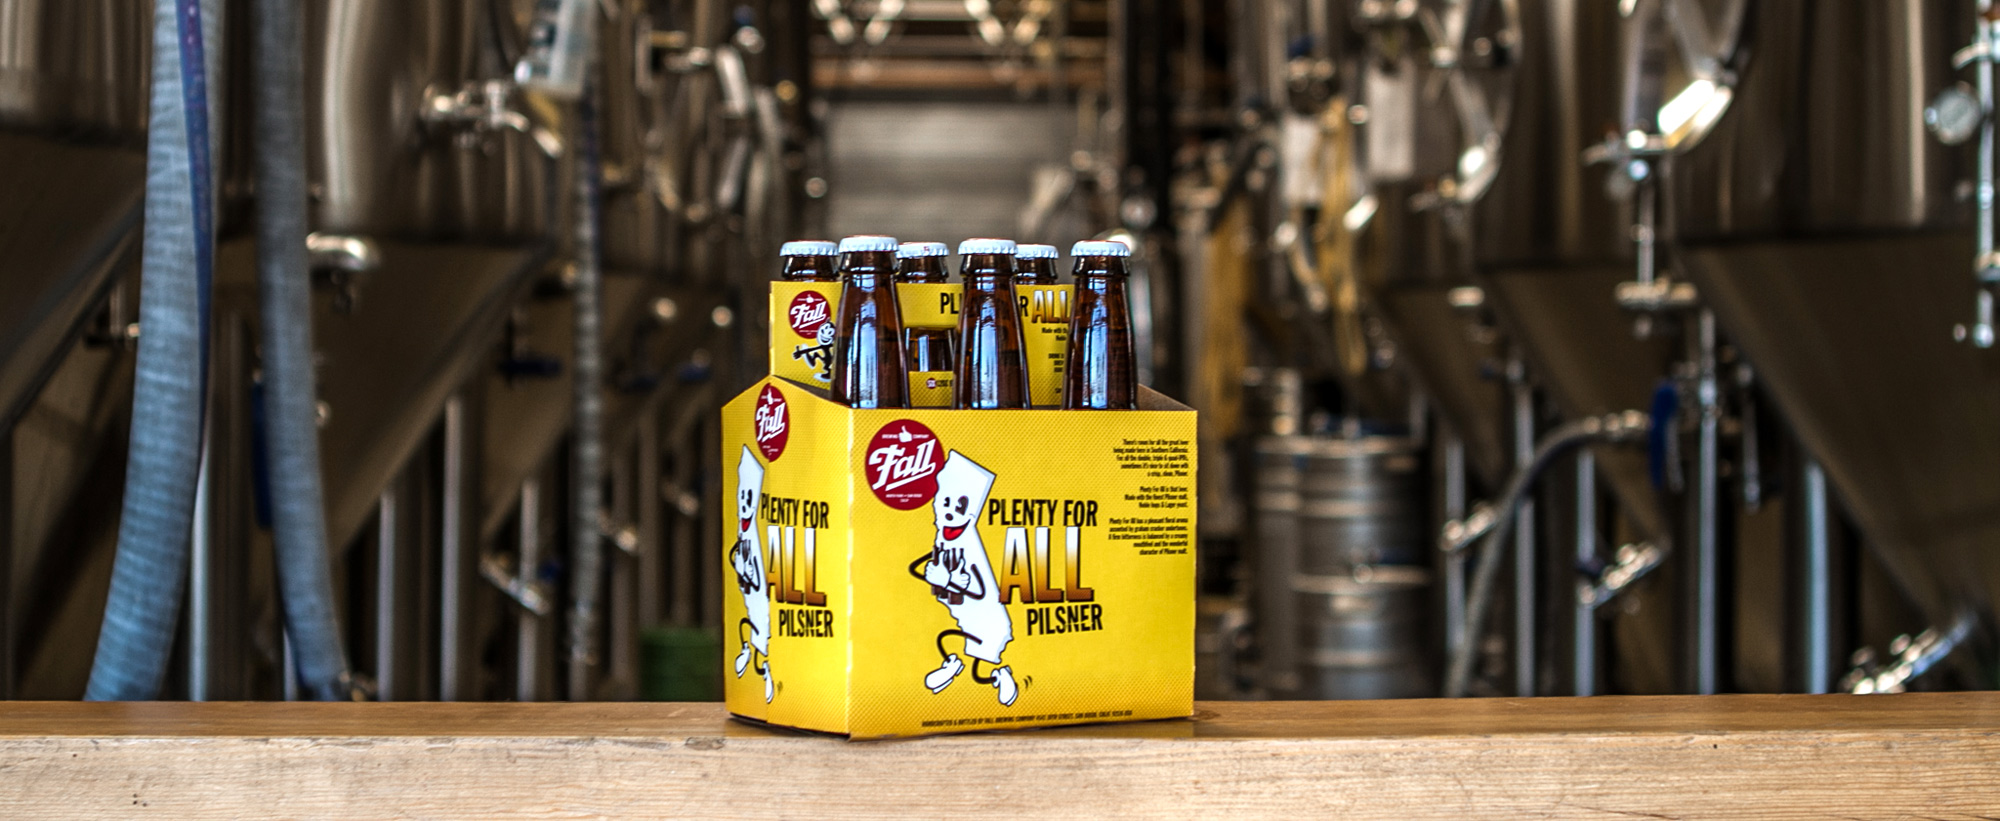 6-Pack of Plenty For All Pilsner